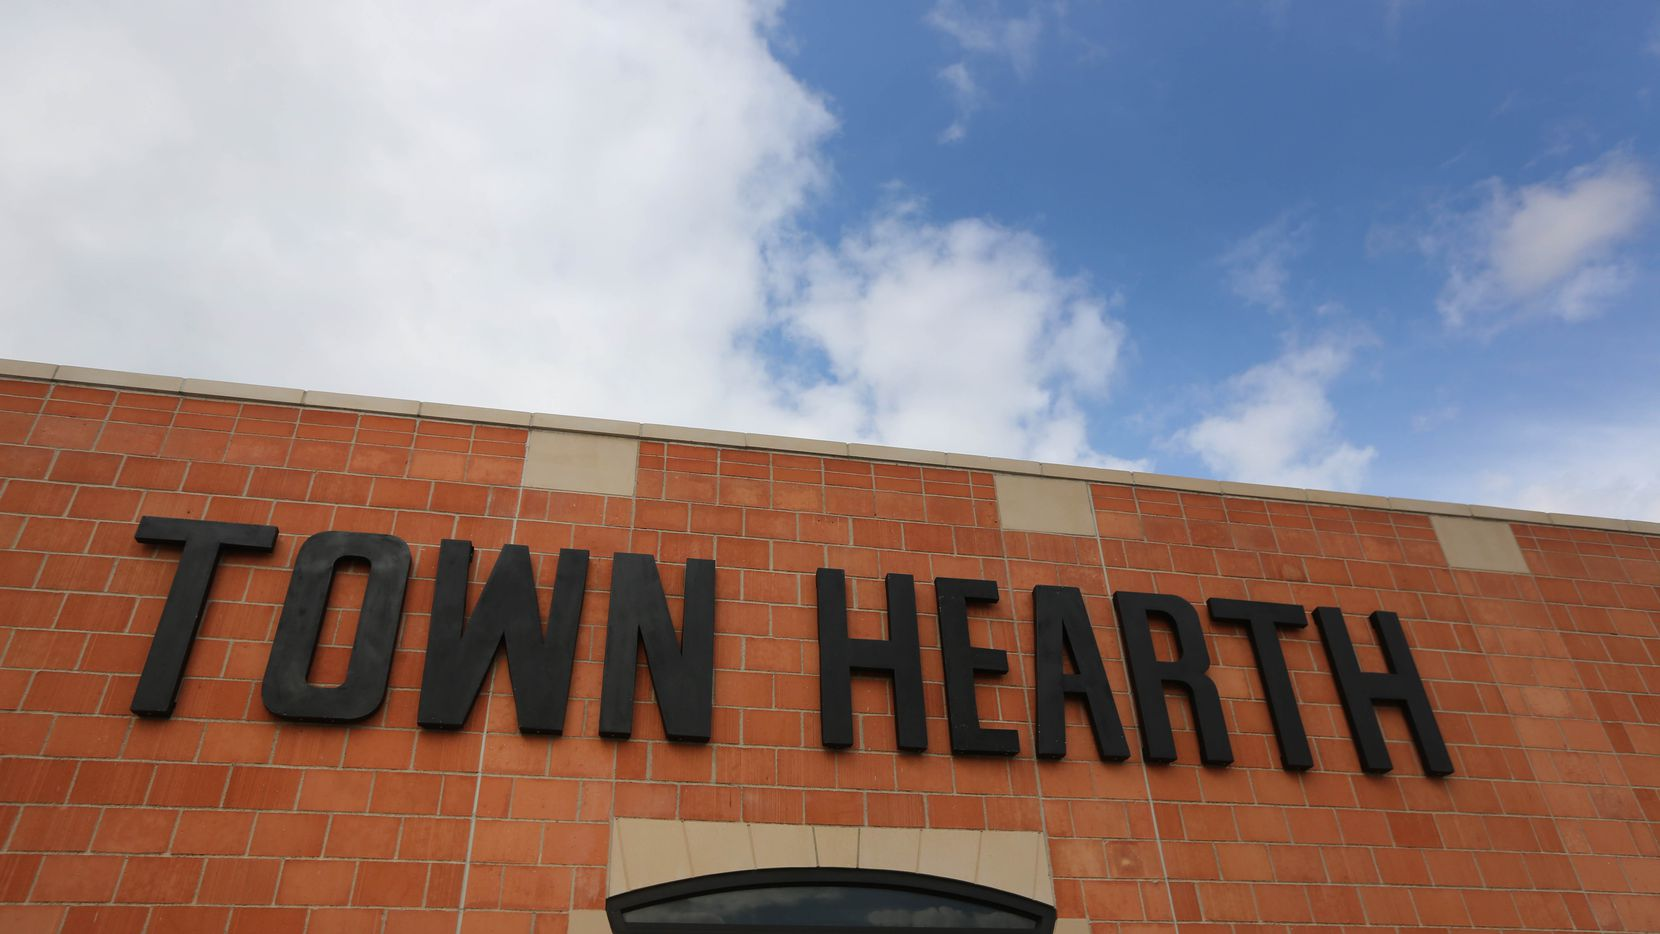 Town Hearth is a steakhouse located in the Design District in Dallas. An employee last worked there March 13, 2020 and was found to be positive for the new coronavirus five days later.